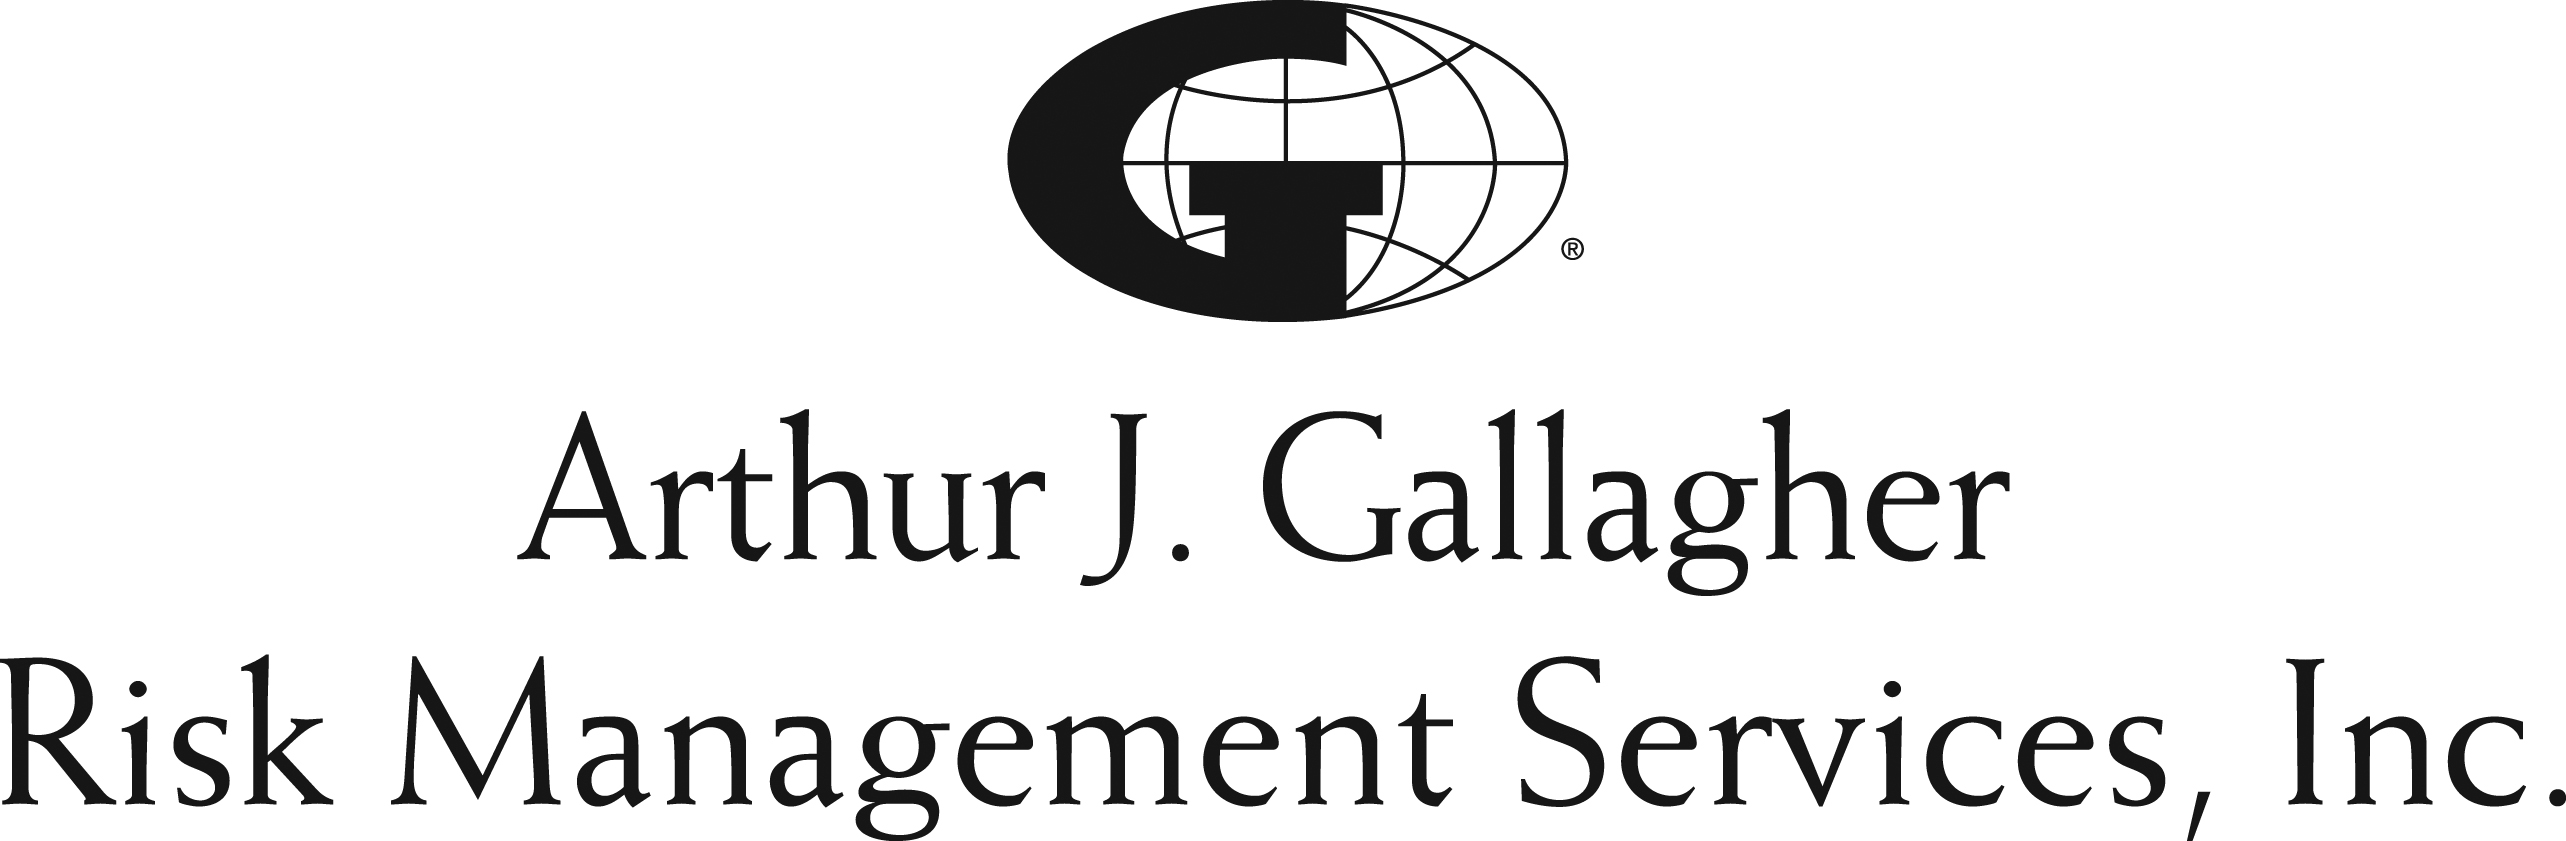 Arthur J. Gallagher Insurance